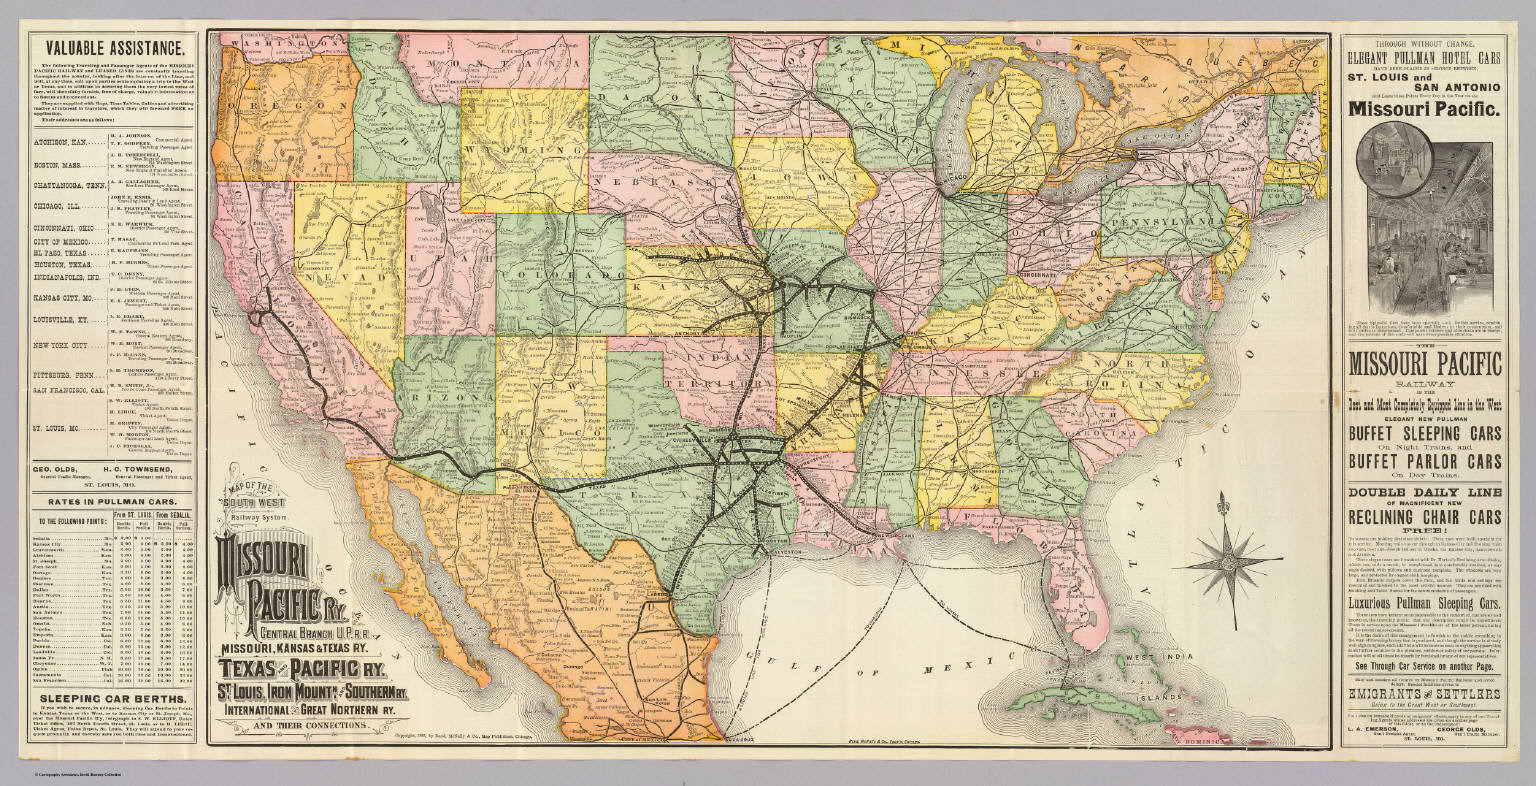 South West Railway System David Rumsey Historical Map Collection - Map of northern missouri